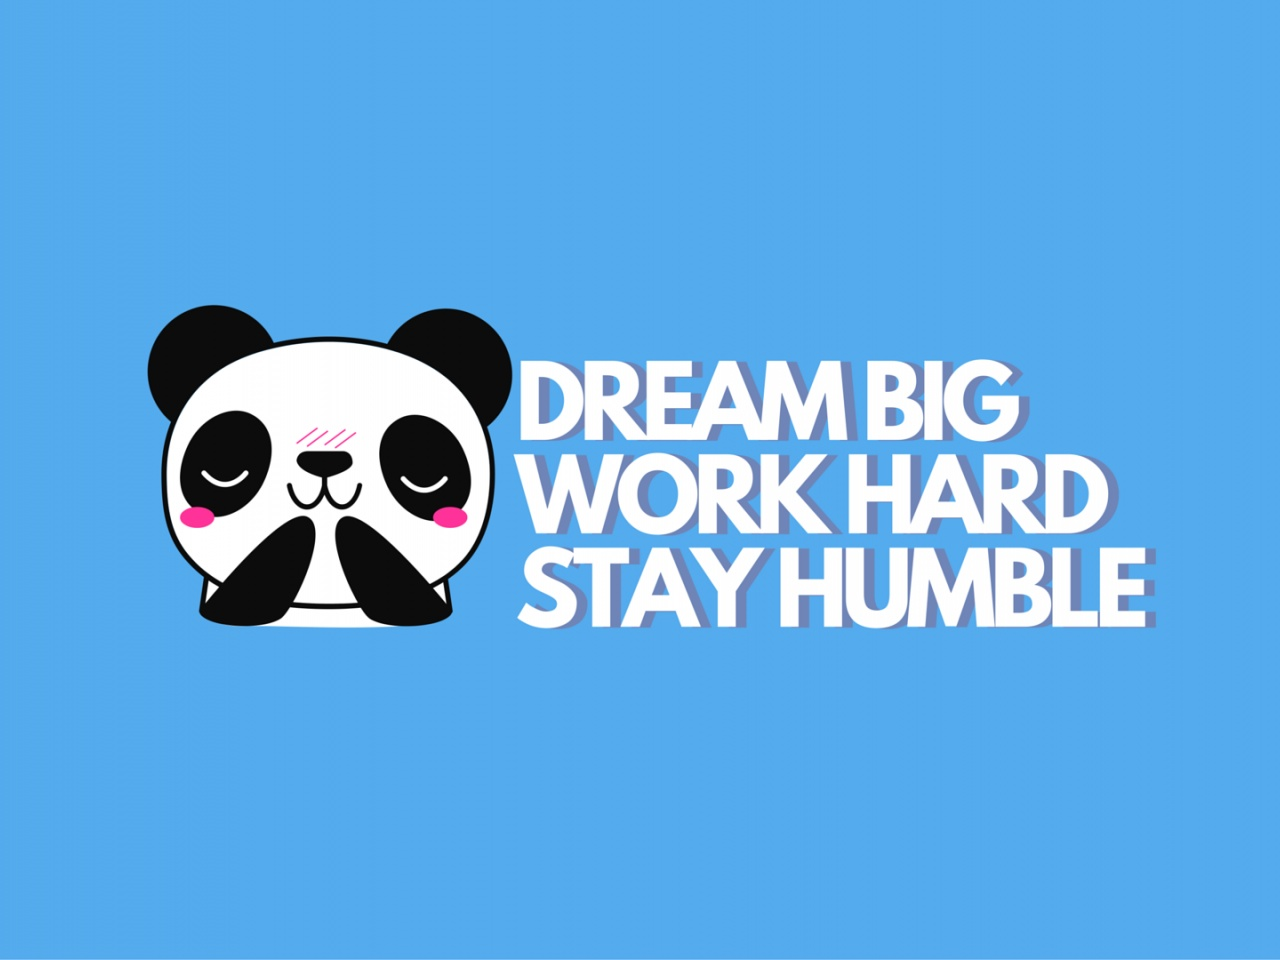 1280x720 work hard stay humble vimeo cover image - Stay humble wallpaper ...